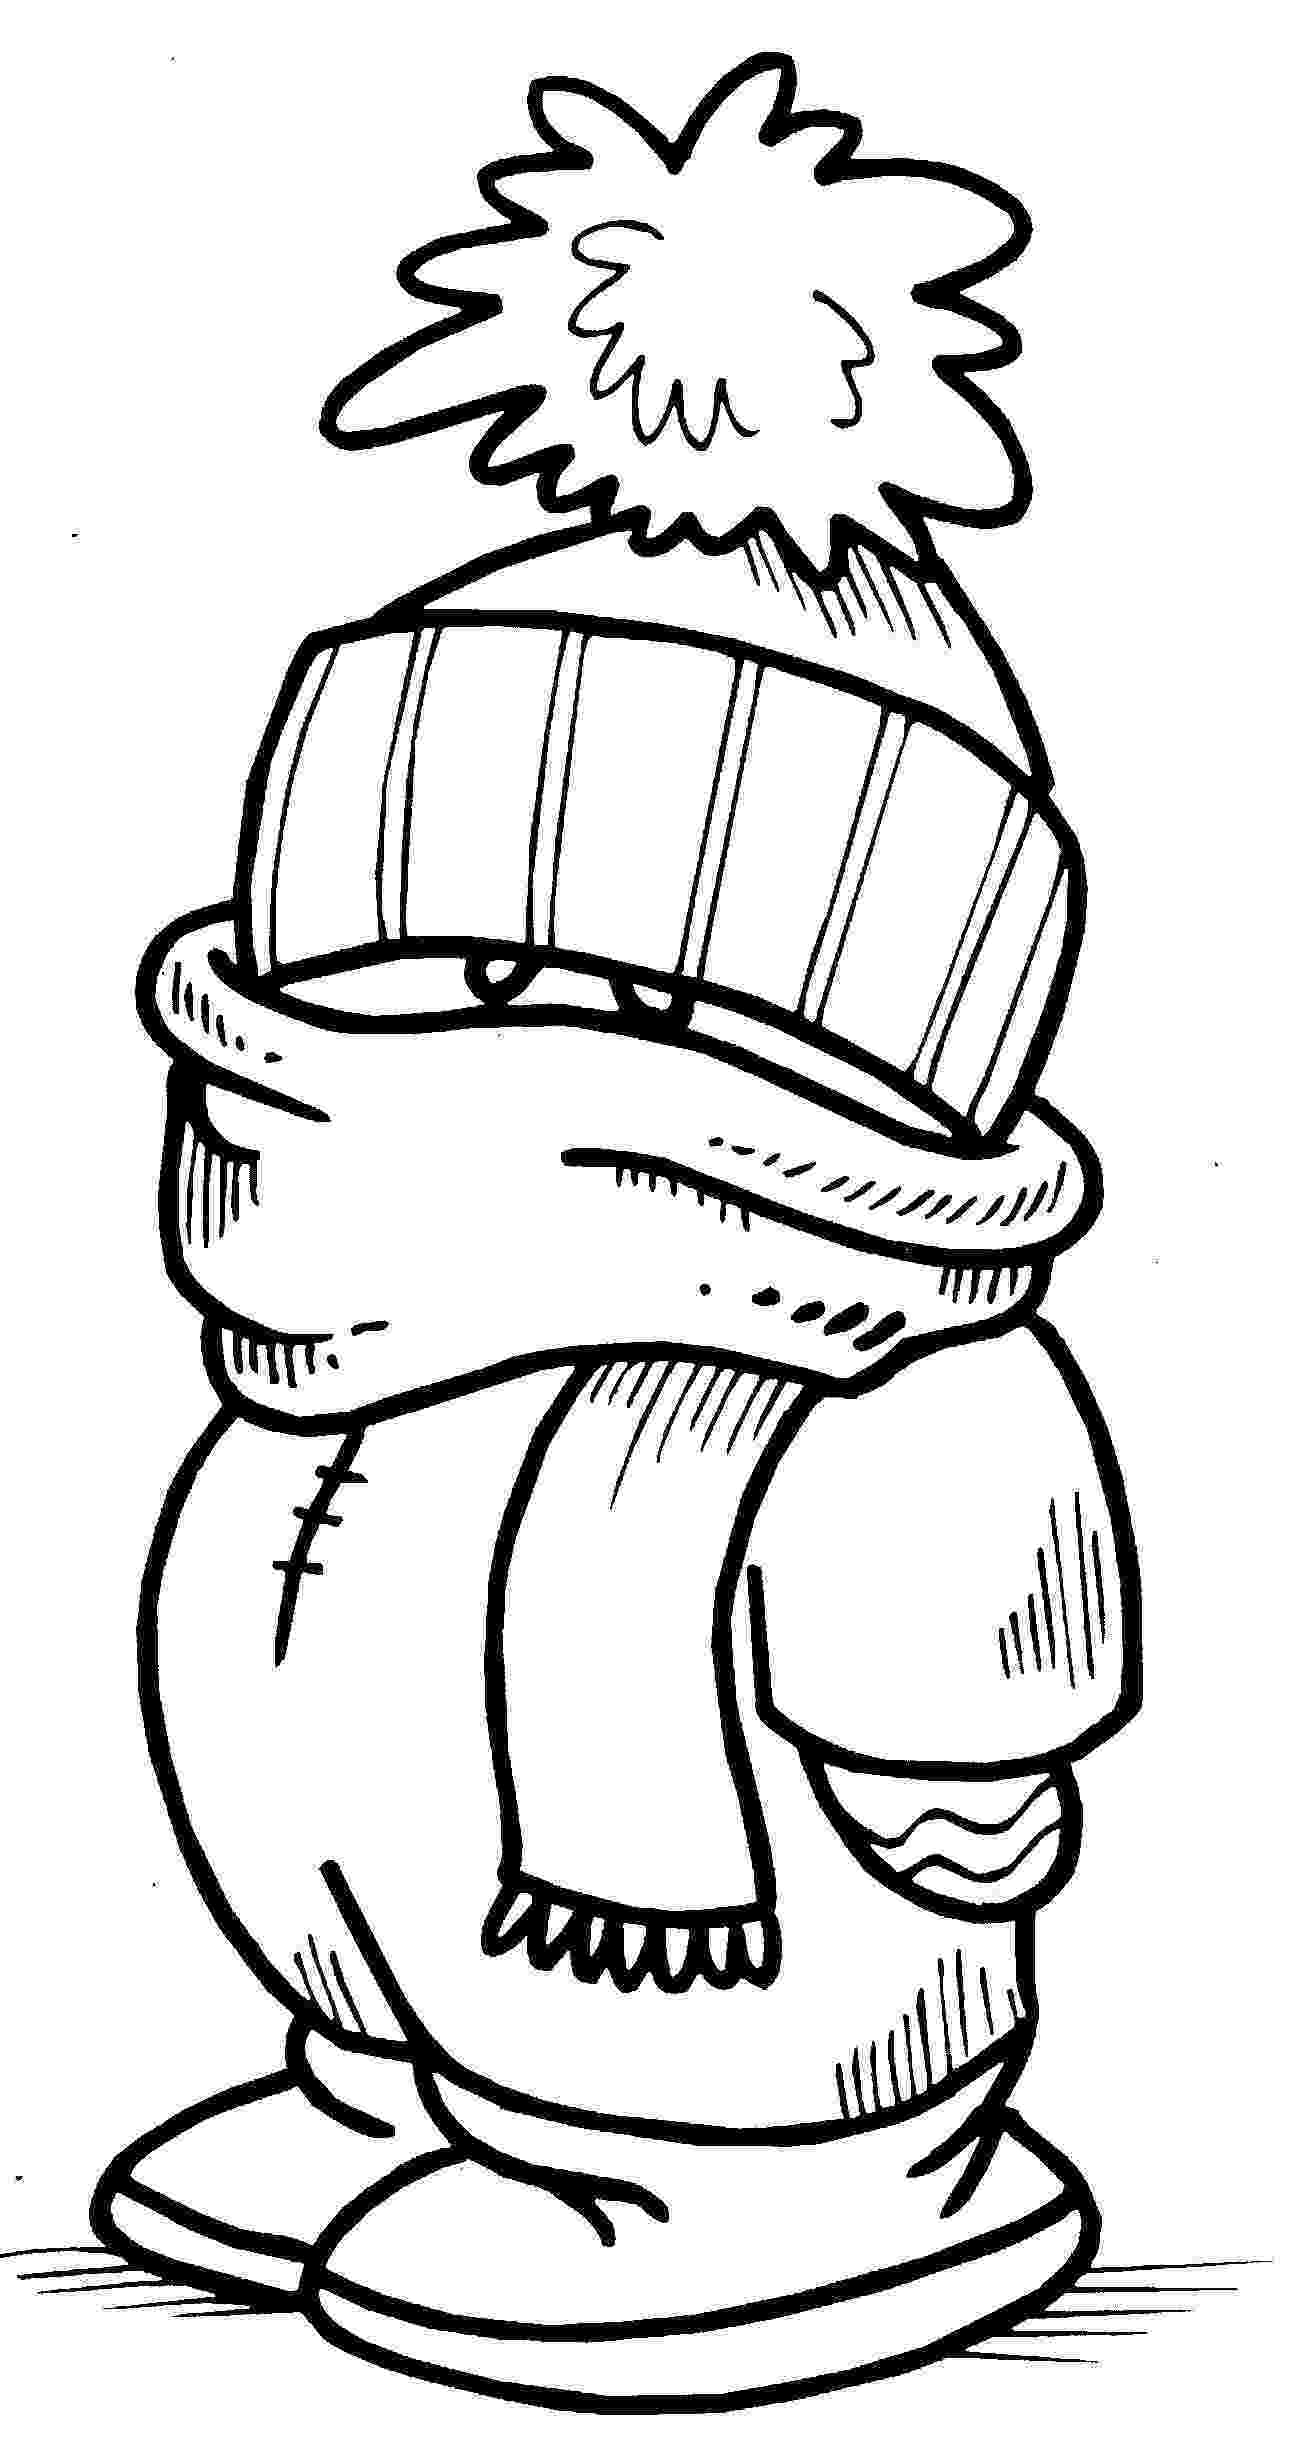 winter coloring sheets free printable winter coloring pages for kids sheets winter coloring 1 1